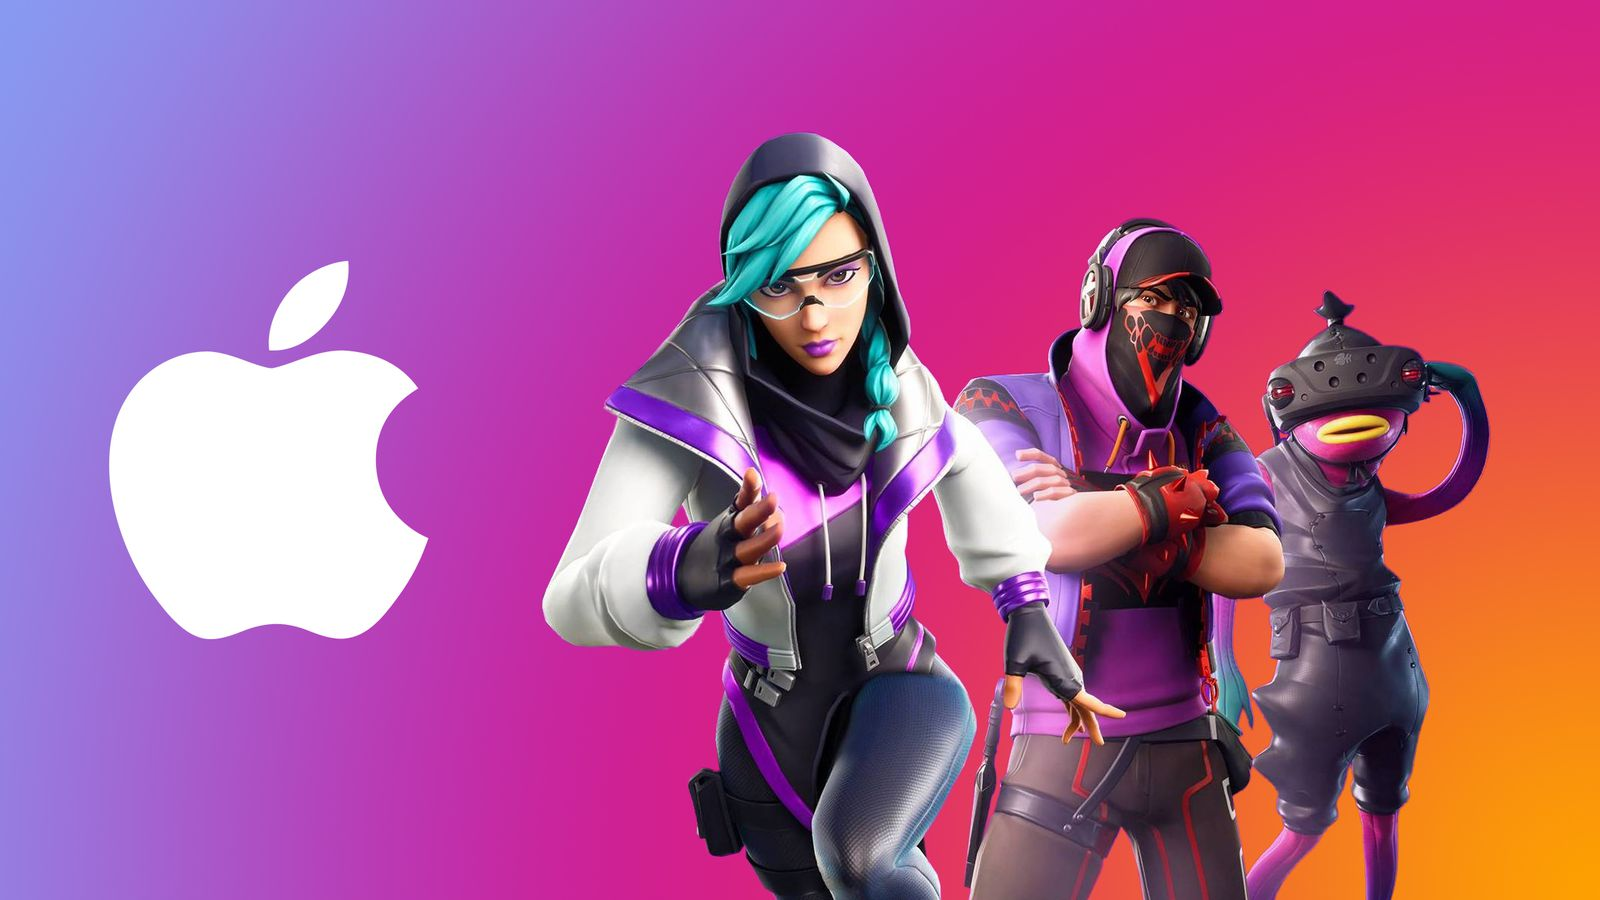 Epic Games Denied Preliminary Injunction for Fortnite, But Apple Can't  Block Unreal Engine - MacRumors